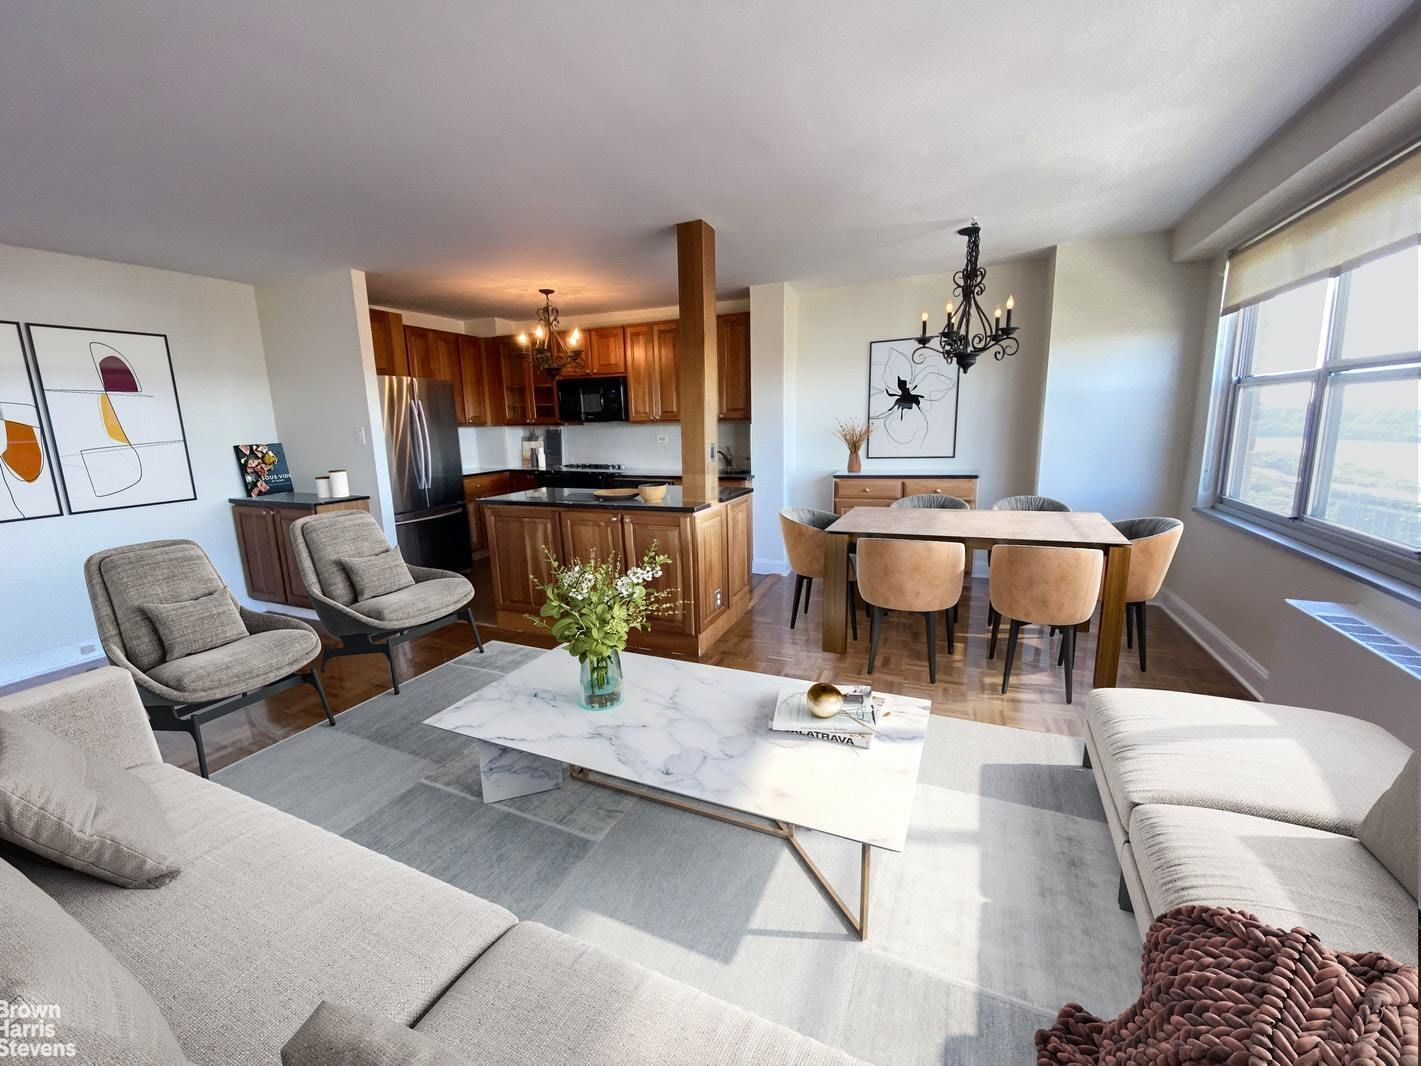 Apartment for sale at 555 Kappock Street, Apt 24K